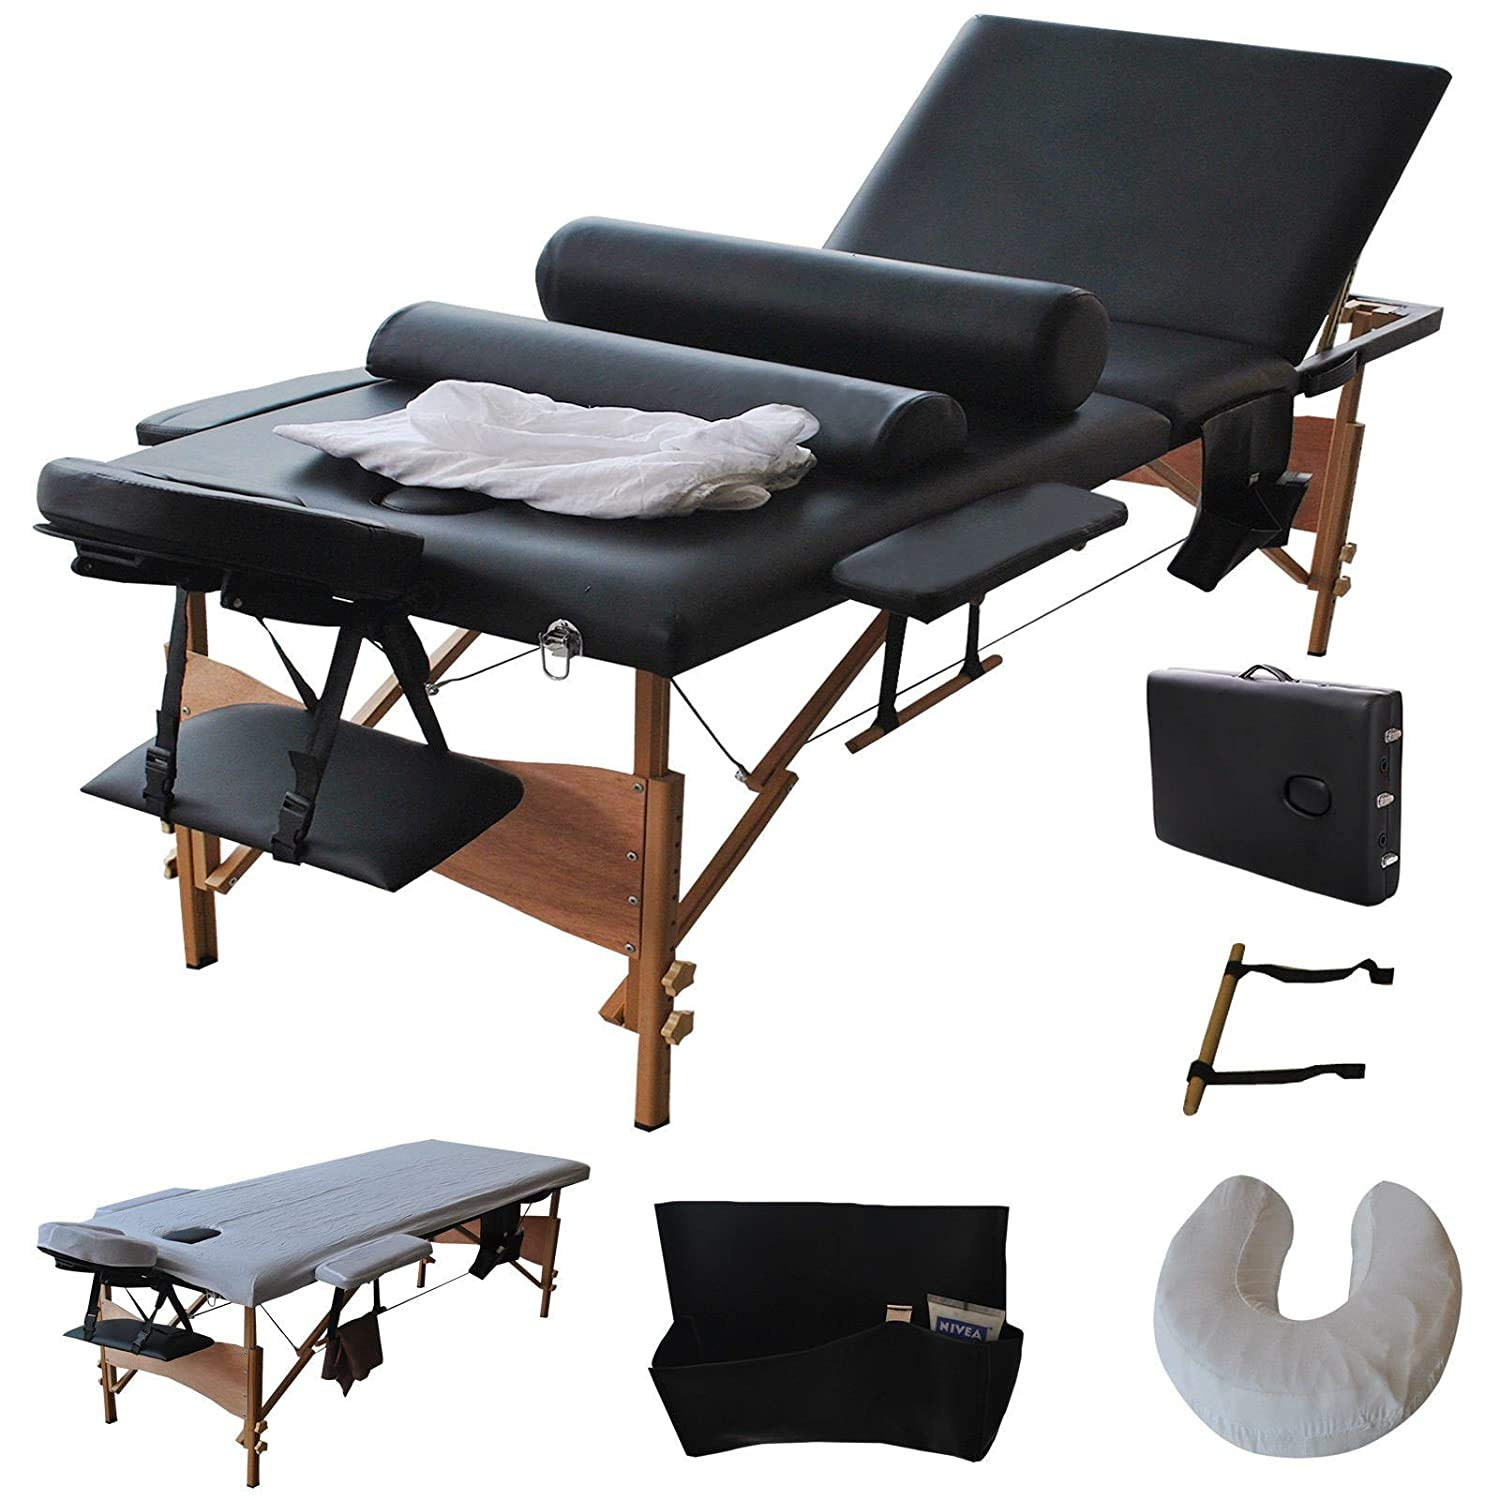 Portable Massage Table, BestComfort 84inch 3 Fold Massage Bed Height Adjustable Spa Bed Facial Cradle Salon Bed with Carrying Case, Black